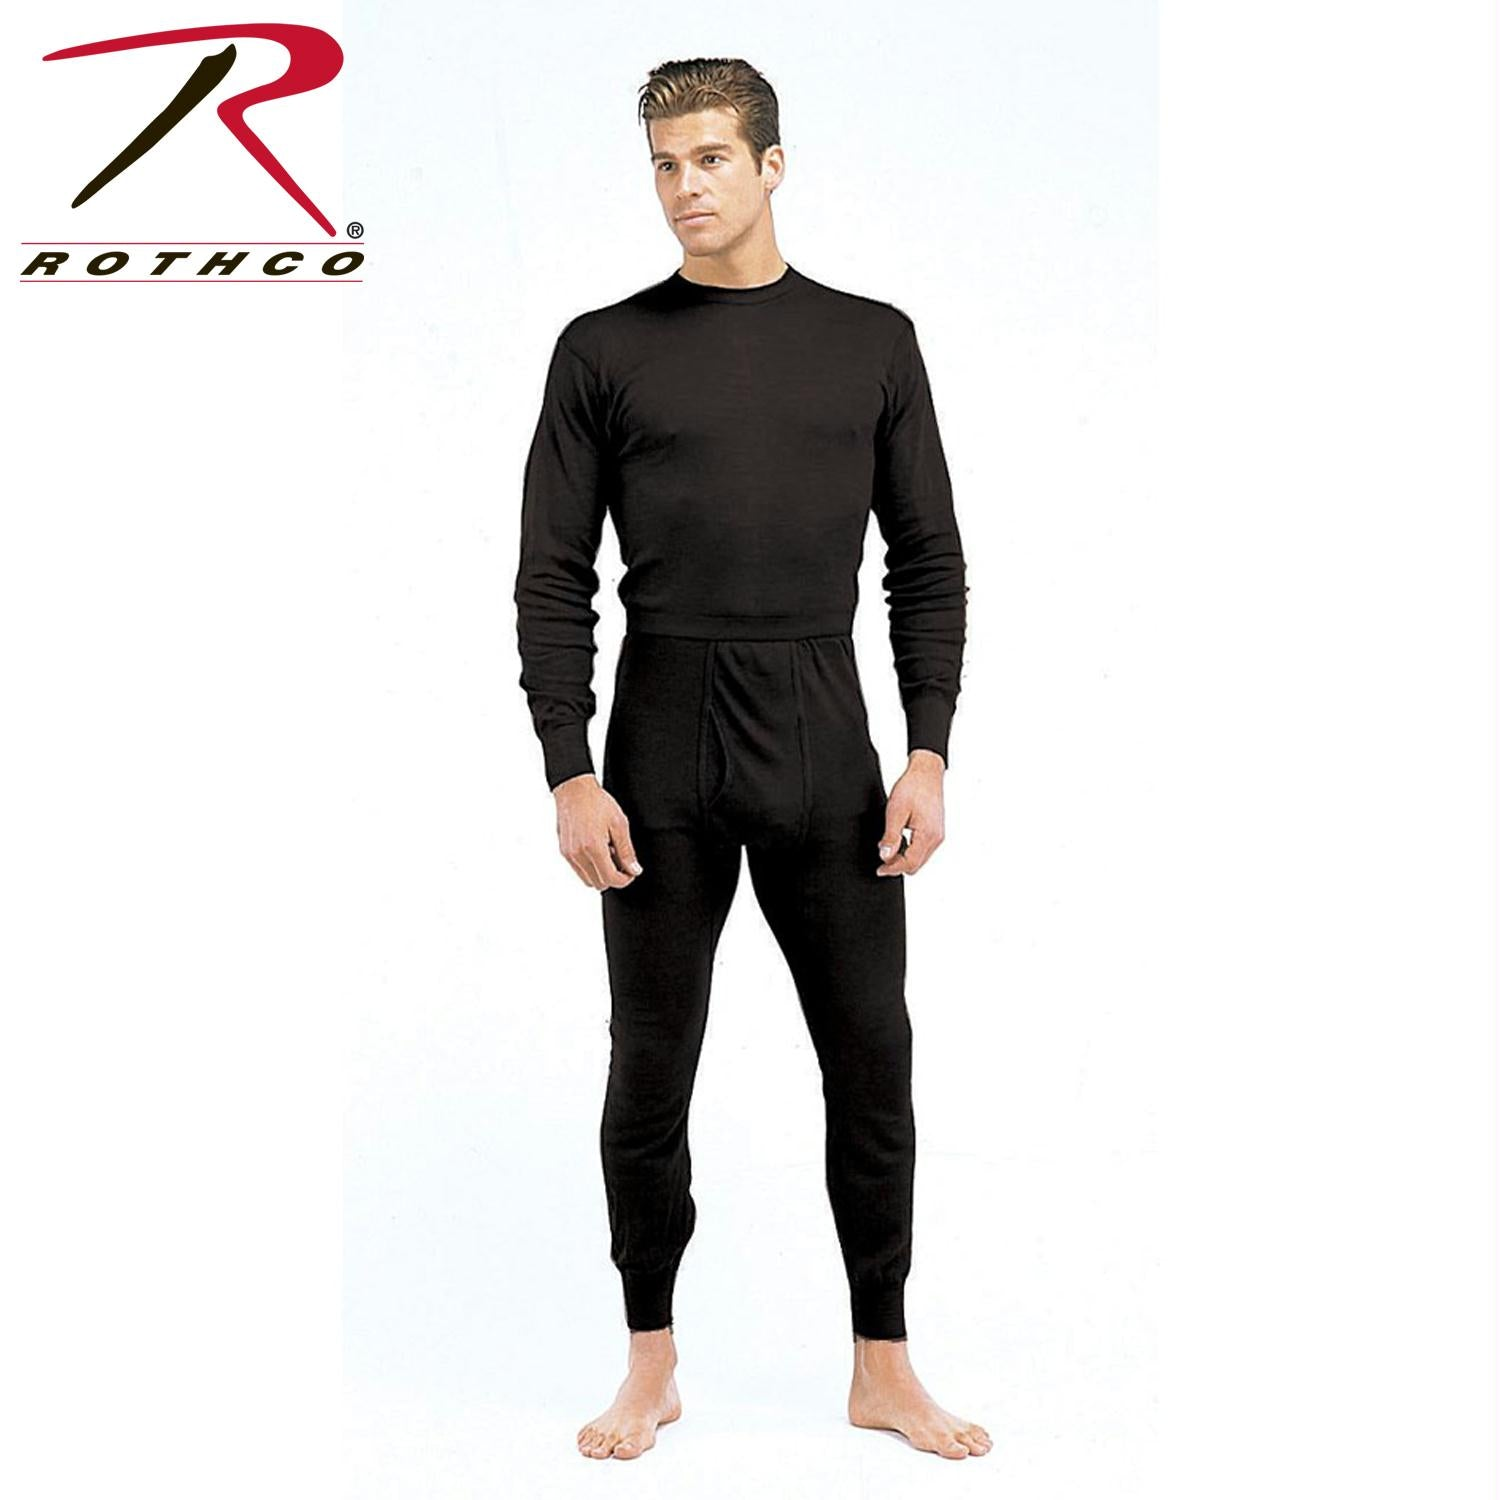 Rothco Single Layer Poly Underwear Tops - Black / 2XL